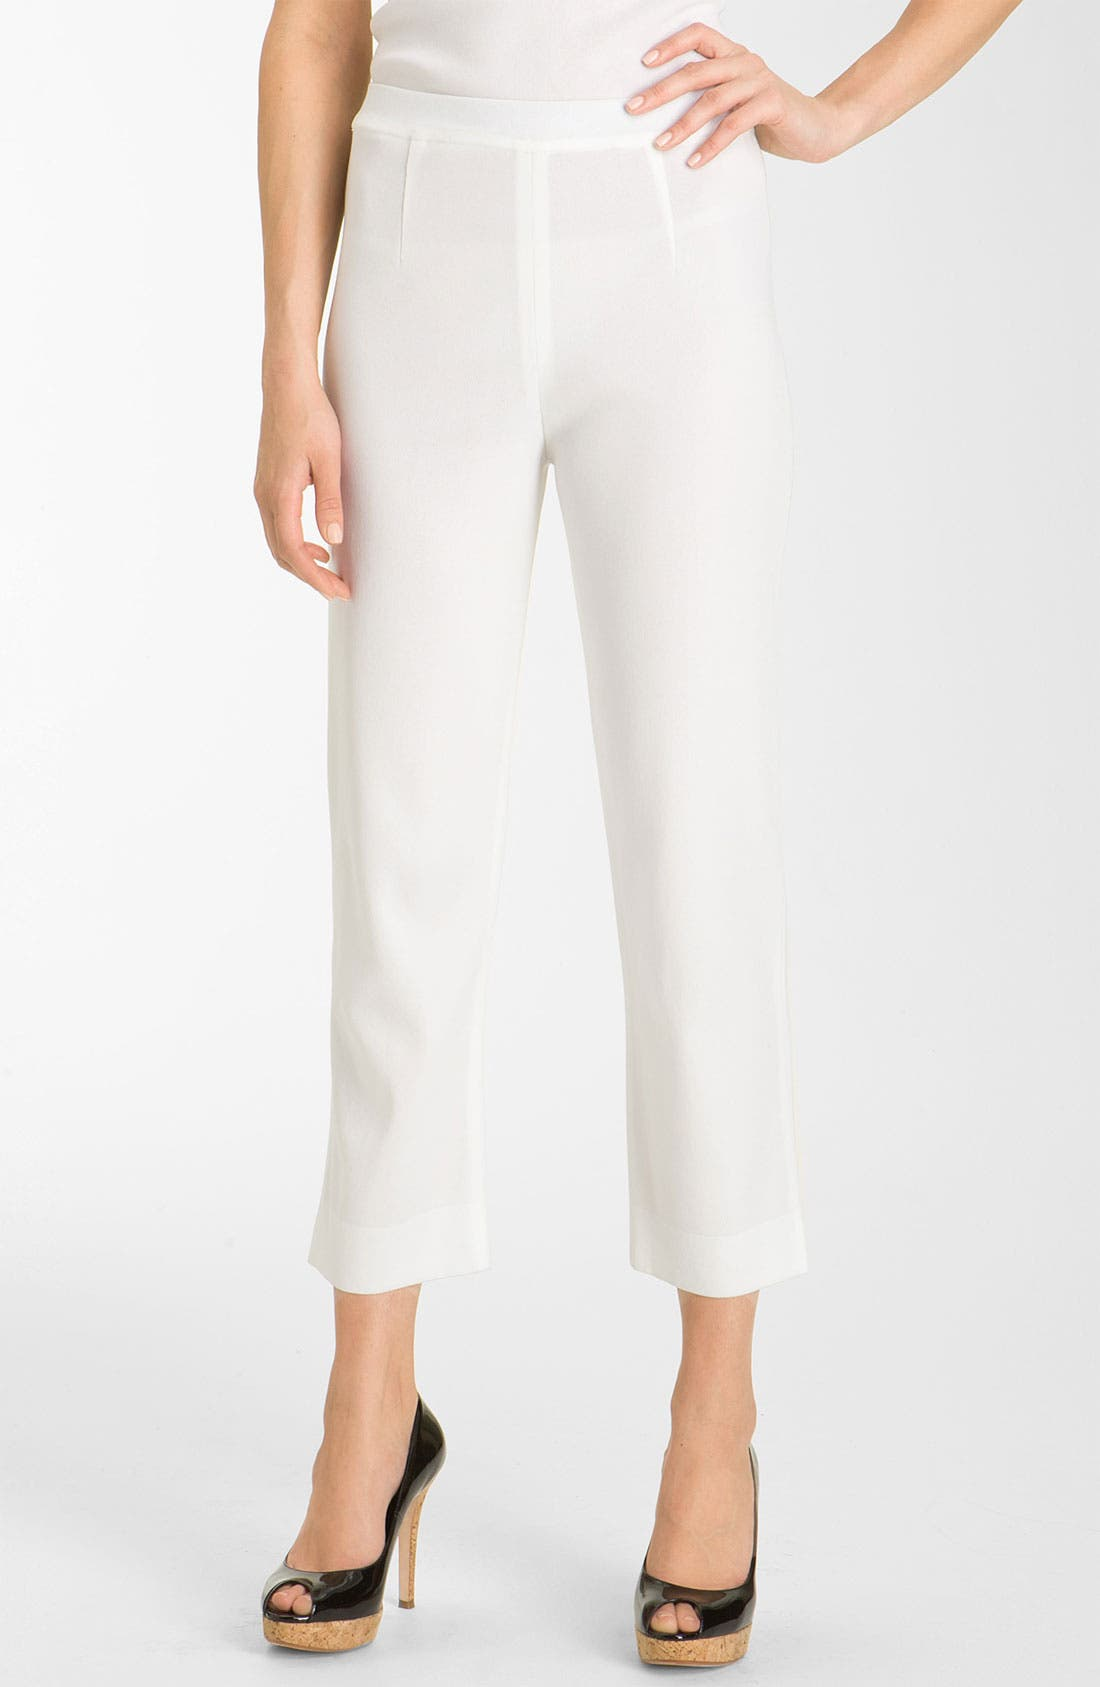 Alternate Image 1 Selected - Misook Capri Pants